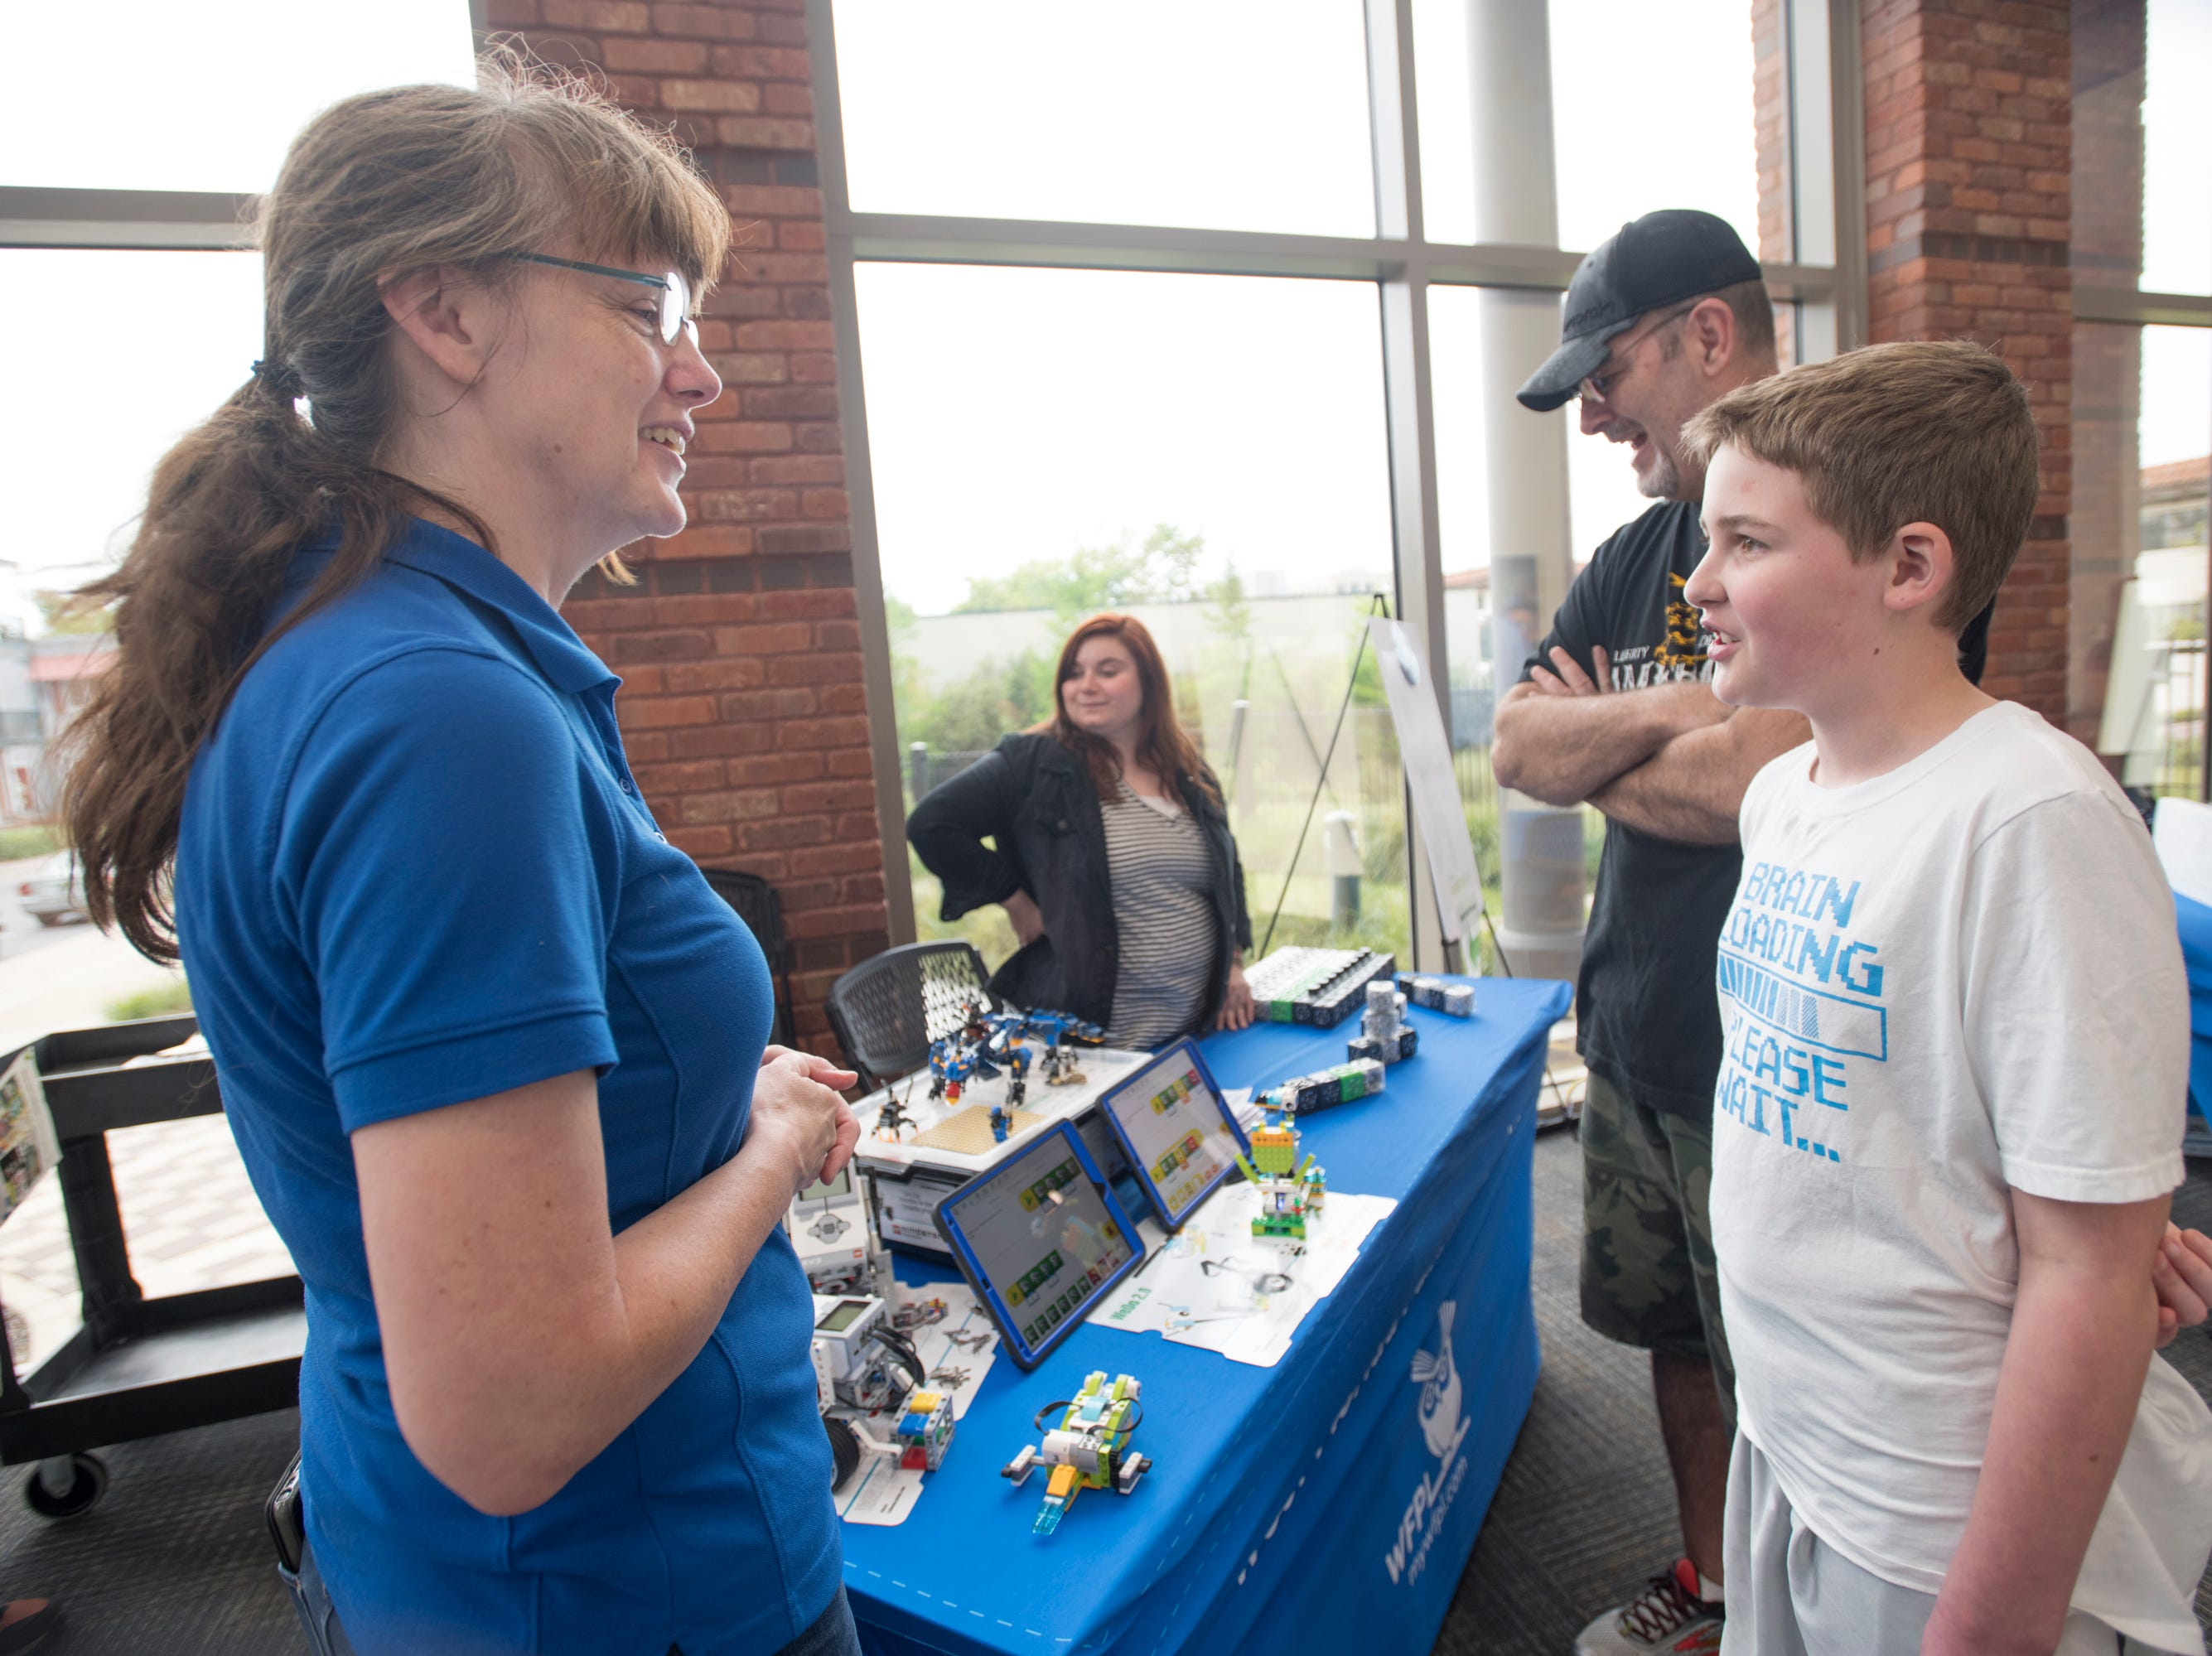 West Florida Public Libraries senior librarian Kimberly Ball, left, chats with Dane Bullock, 12, during the IHMC Open House in downtown Pensacola on Friday, April 12, 2019.